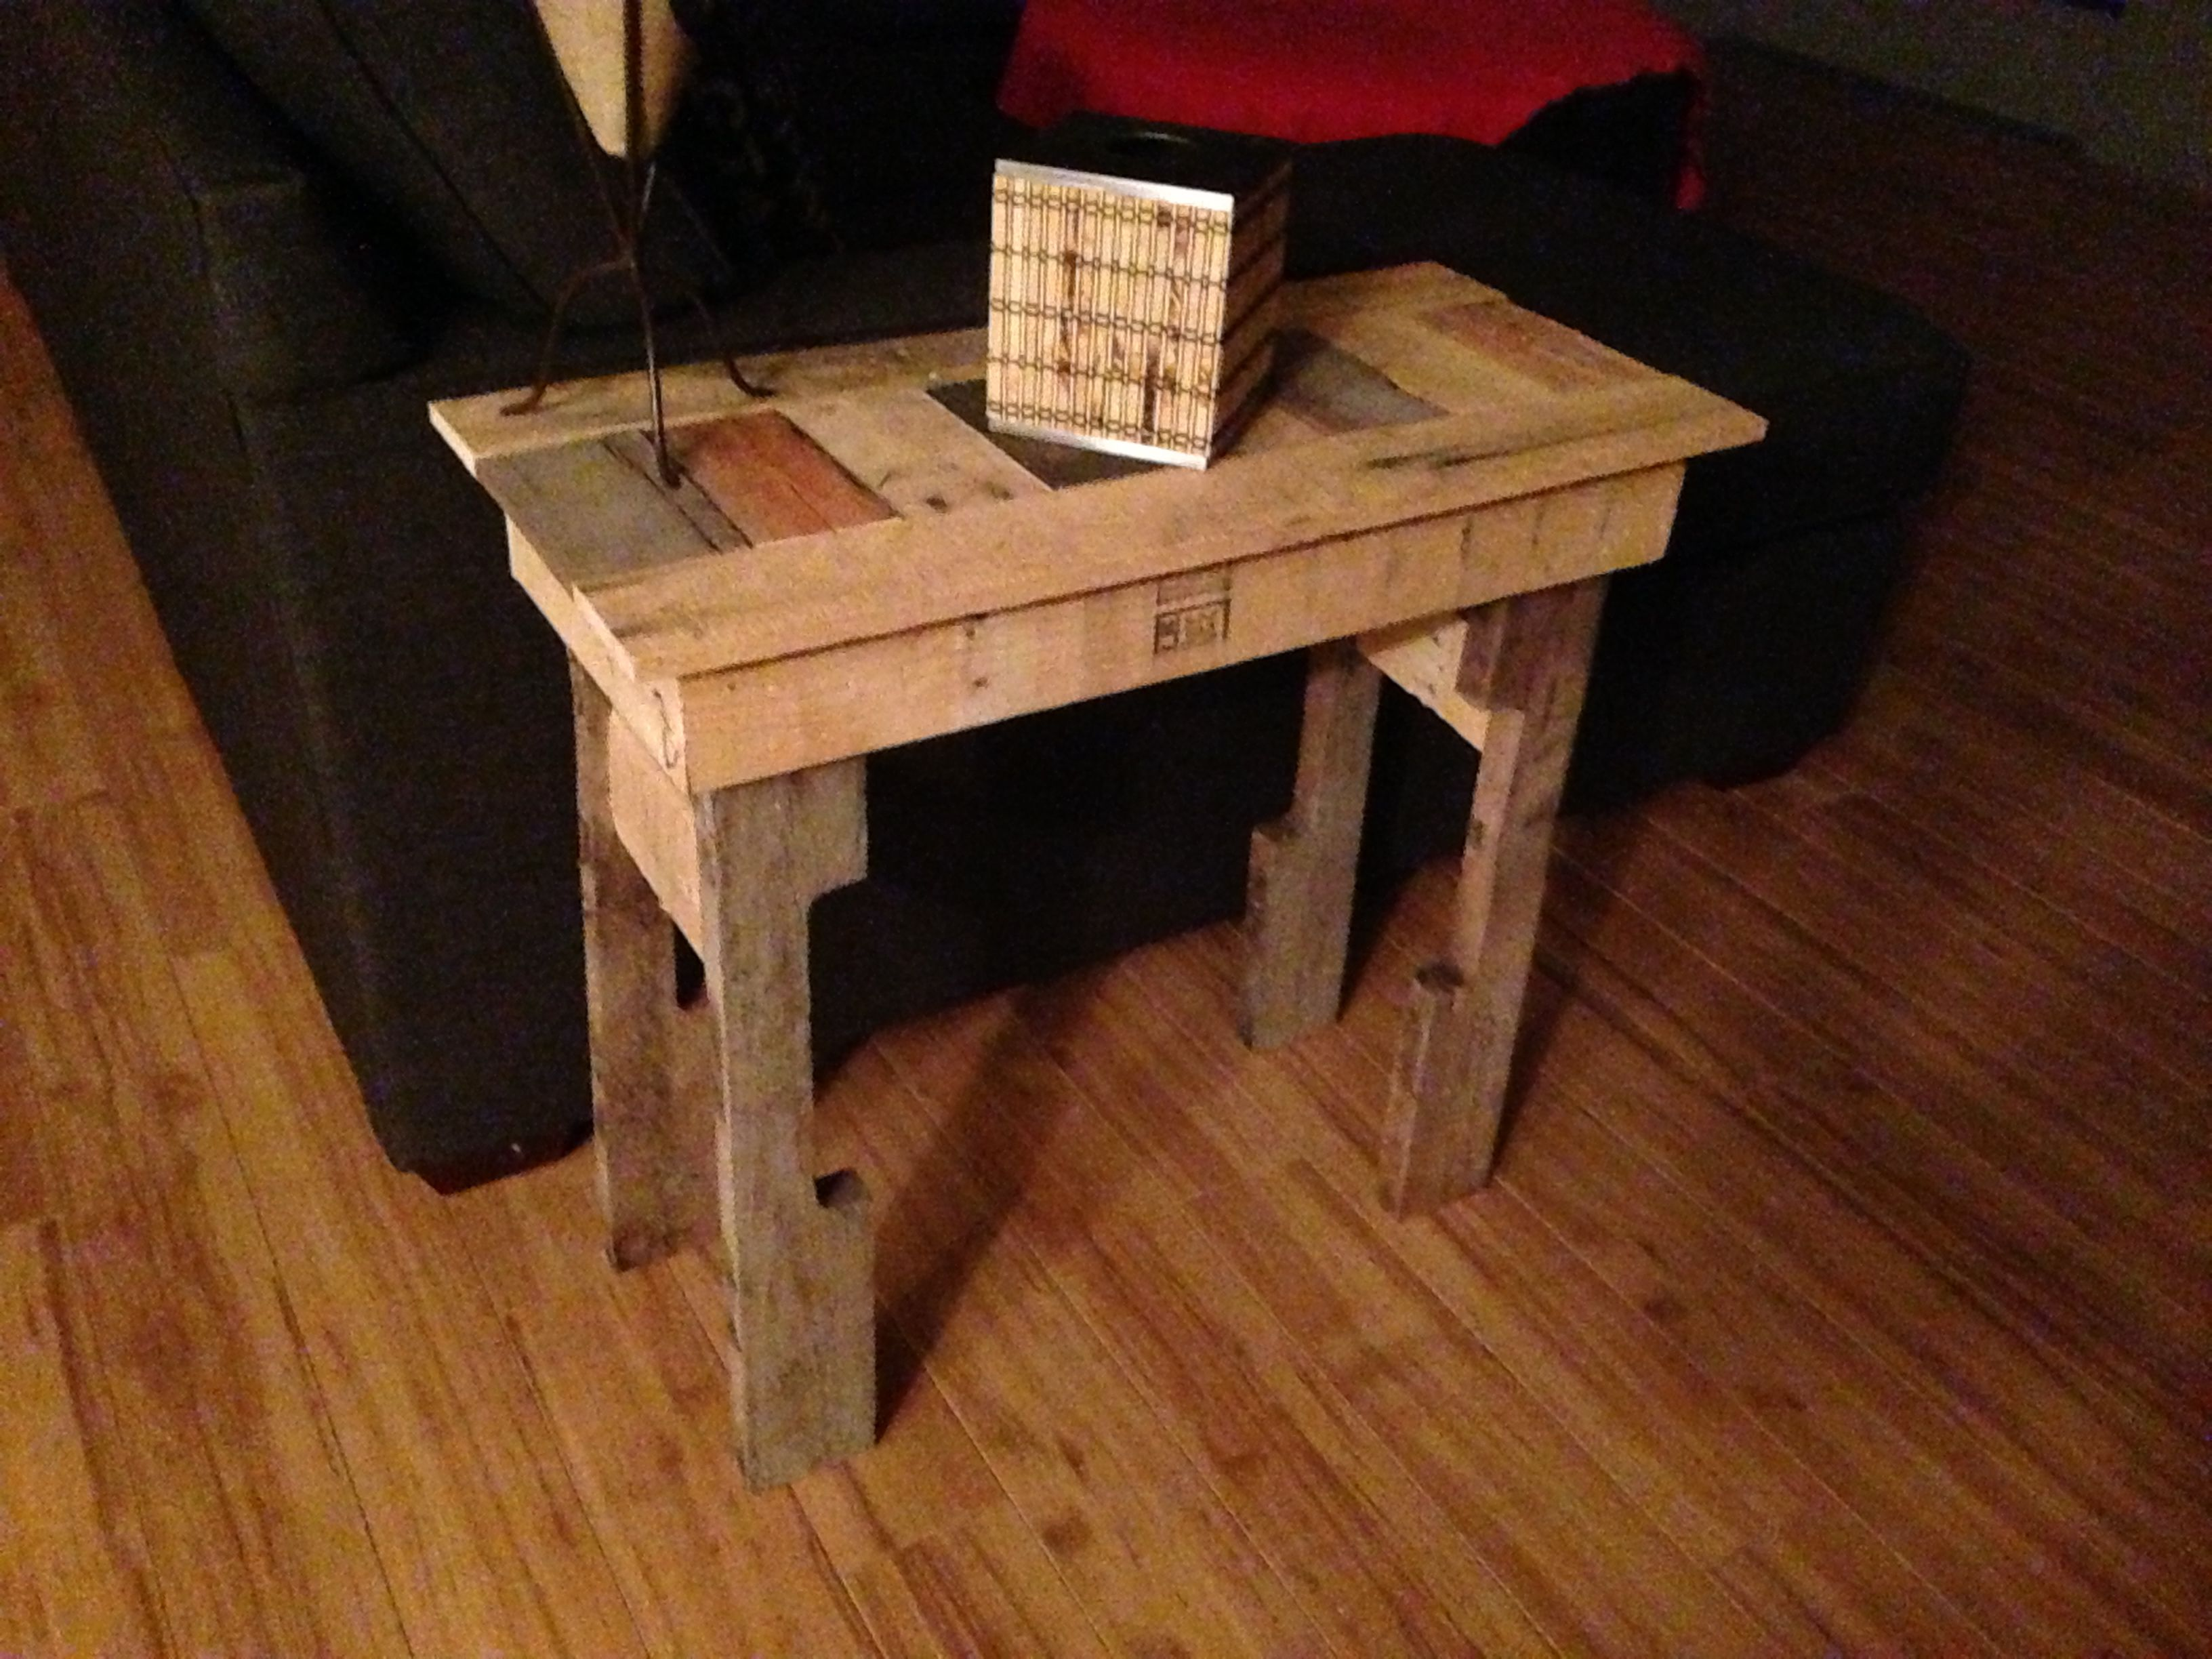 How to make a sofa table out of floor boards - Pallet End Table Diy